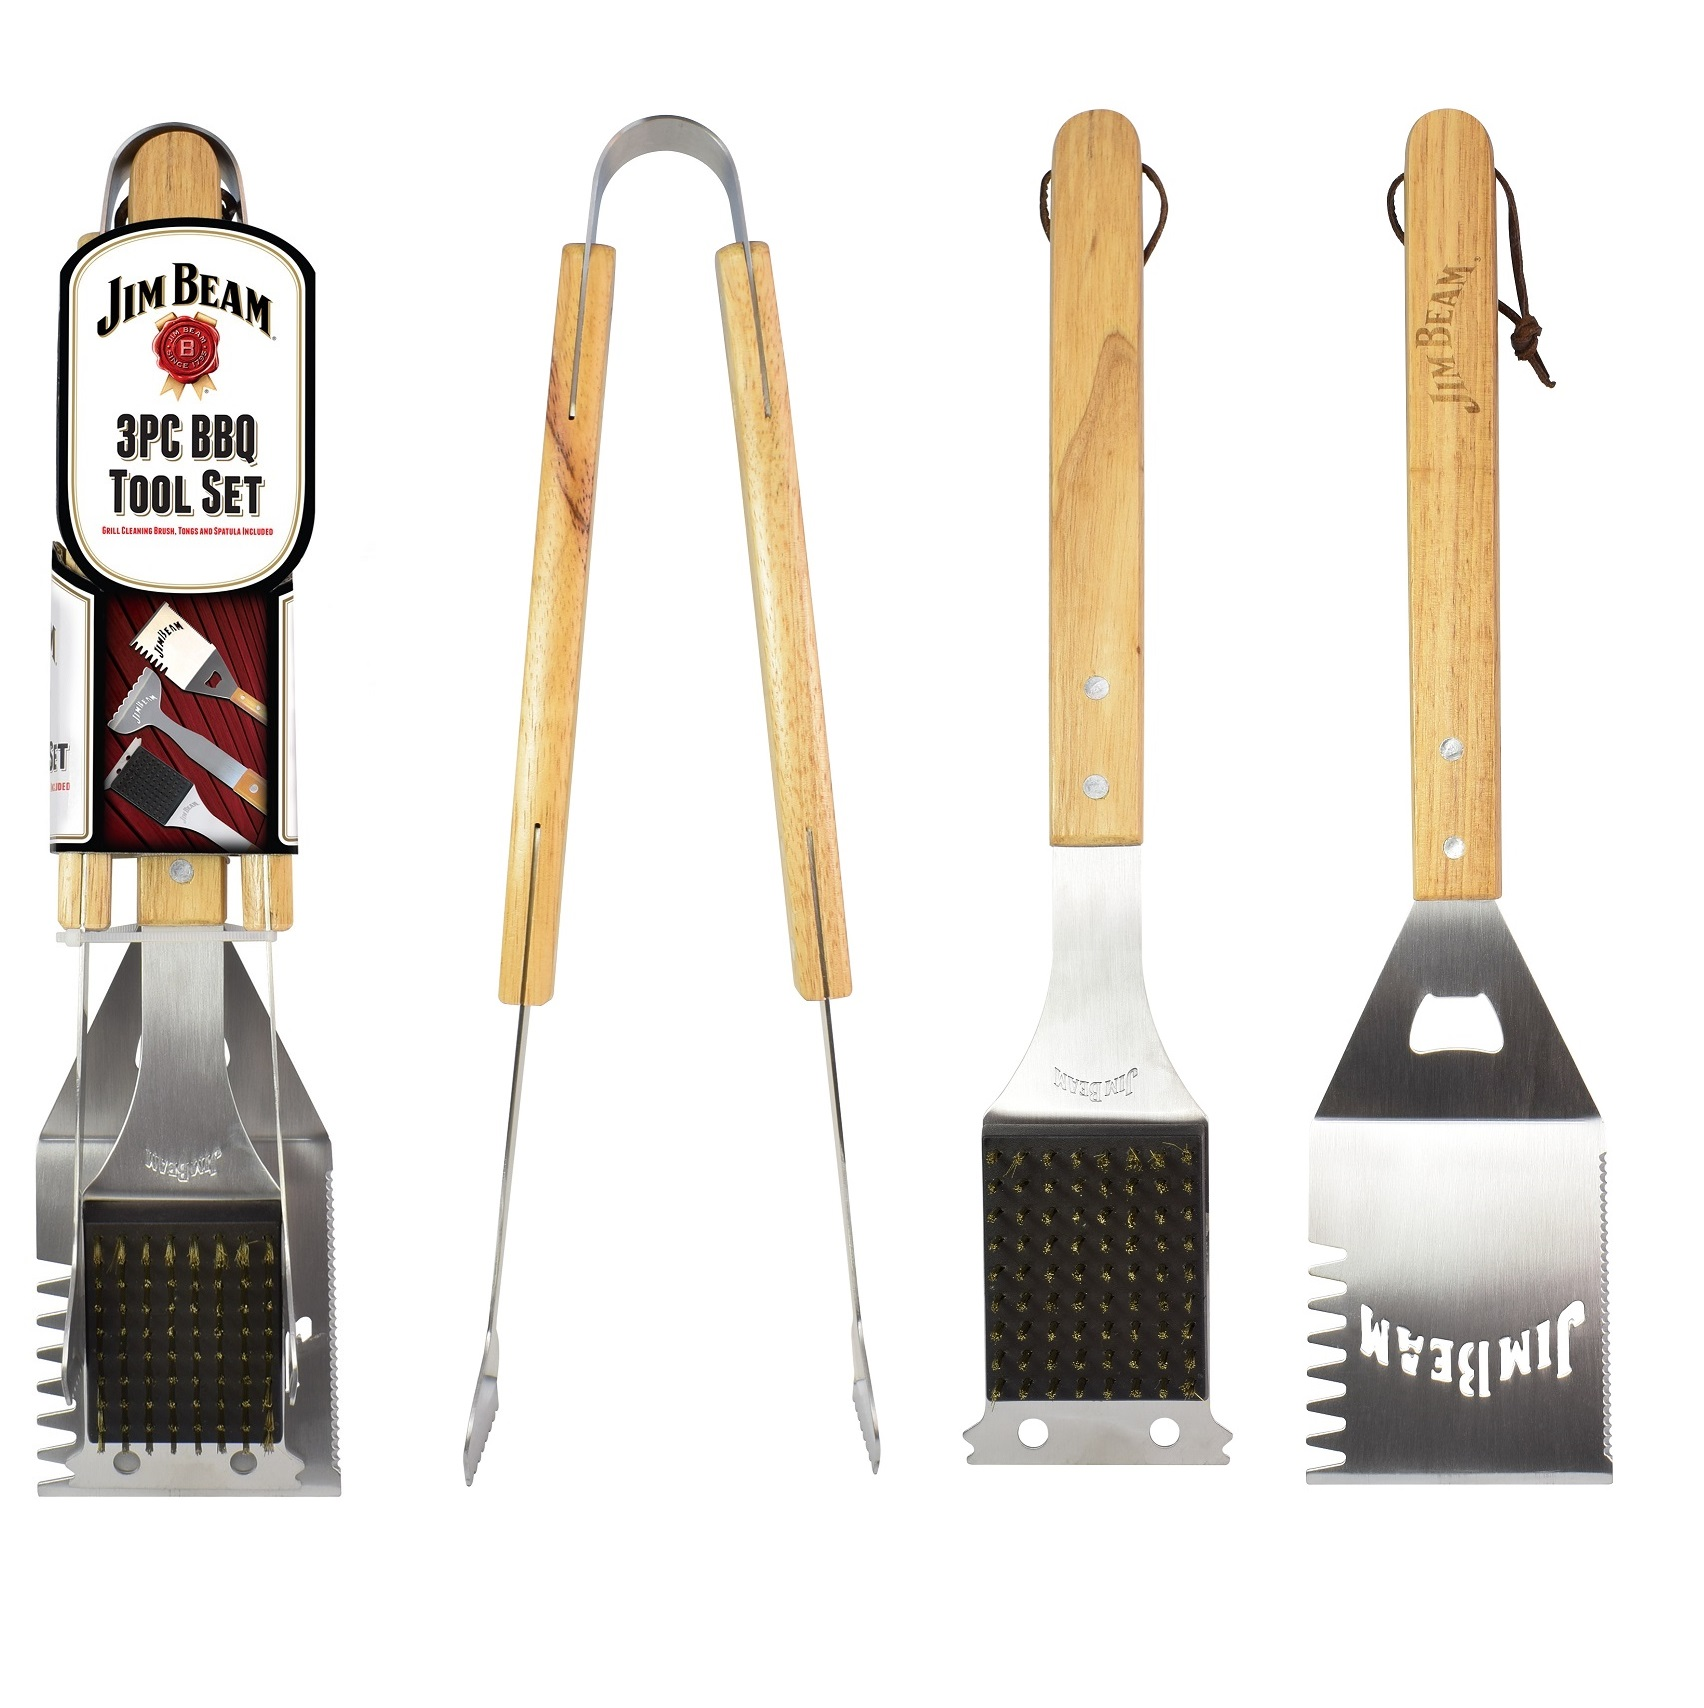 Jim Beam 3-Piece Barbecue Tool Set with Stainless Steel Cleaning Brush